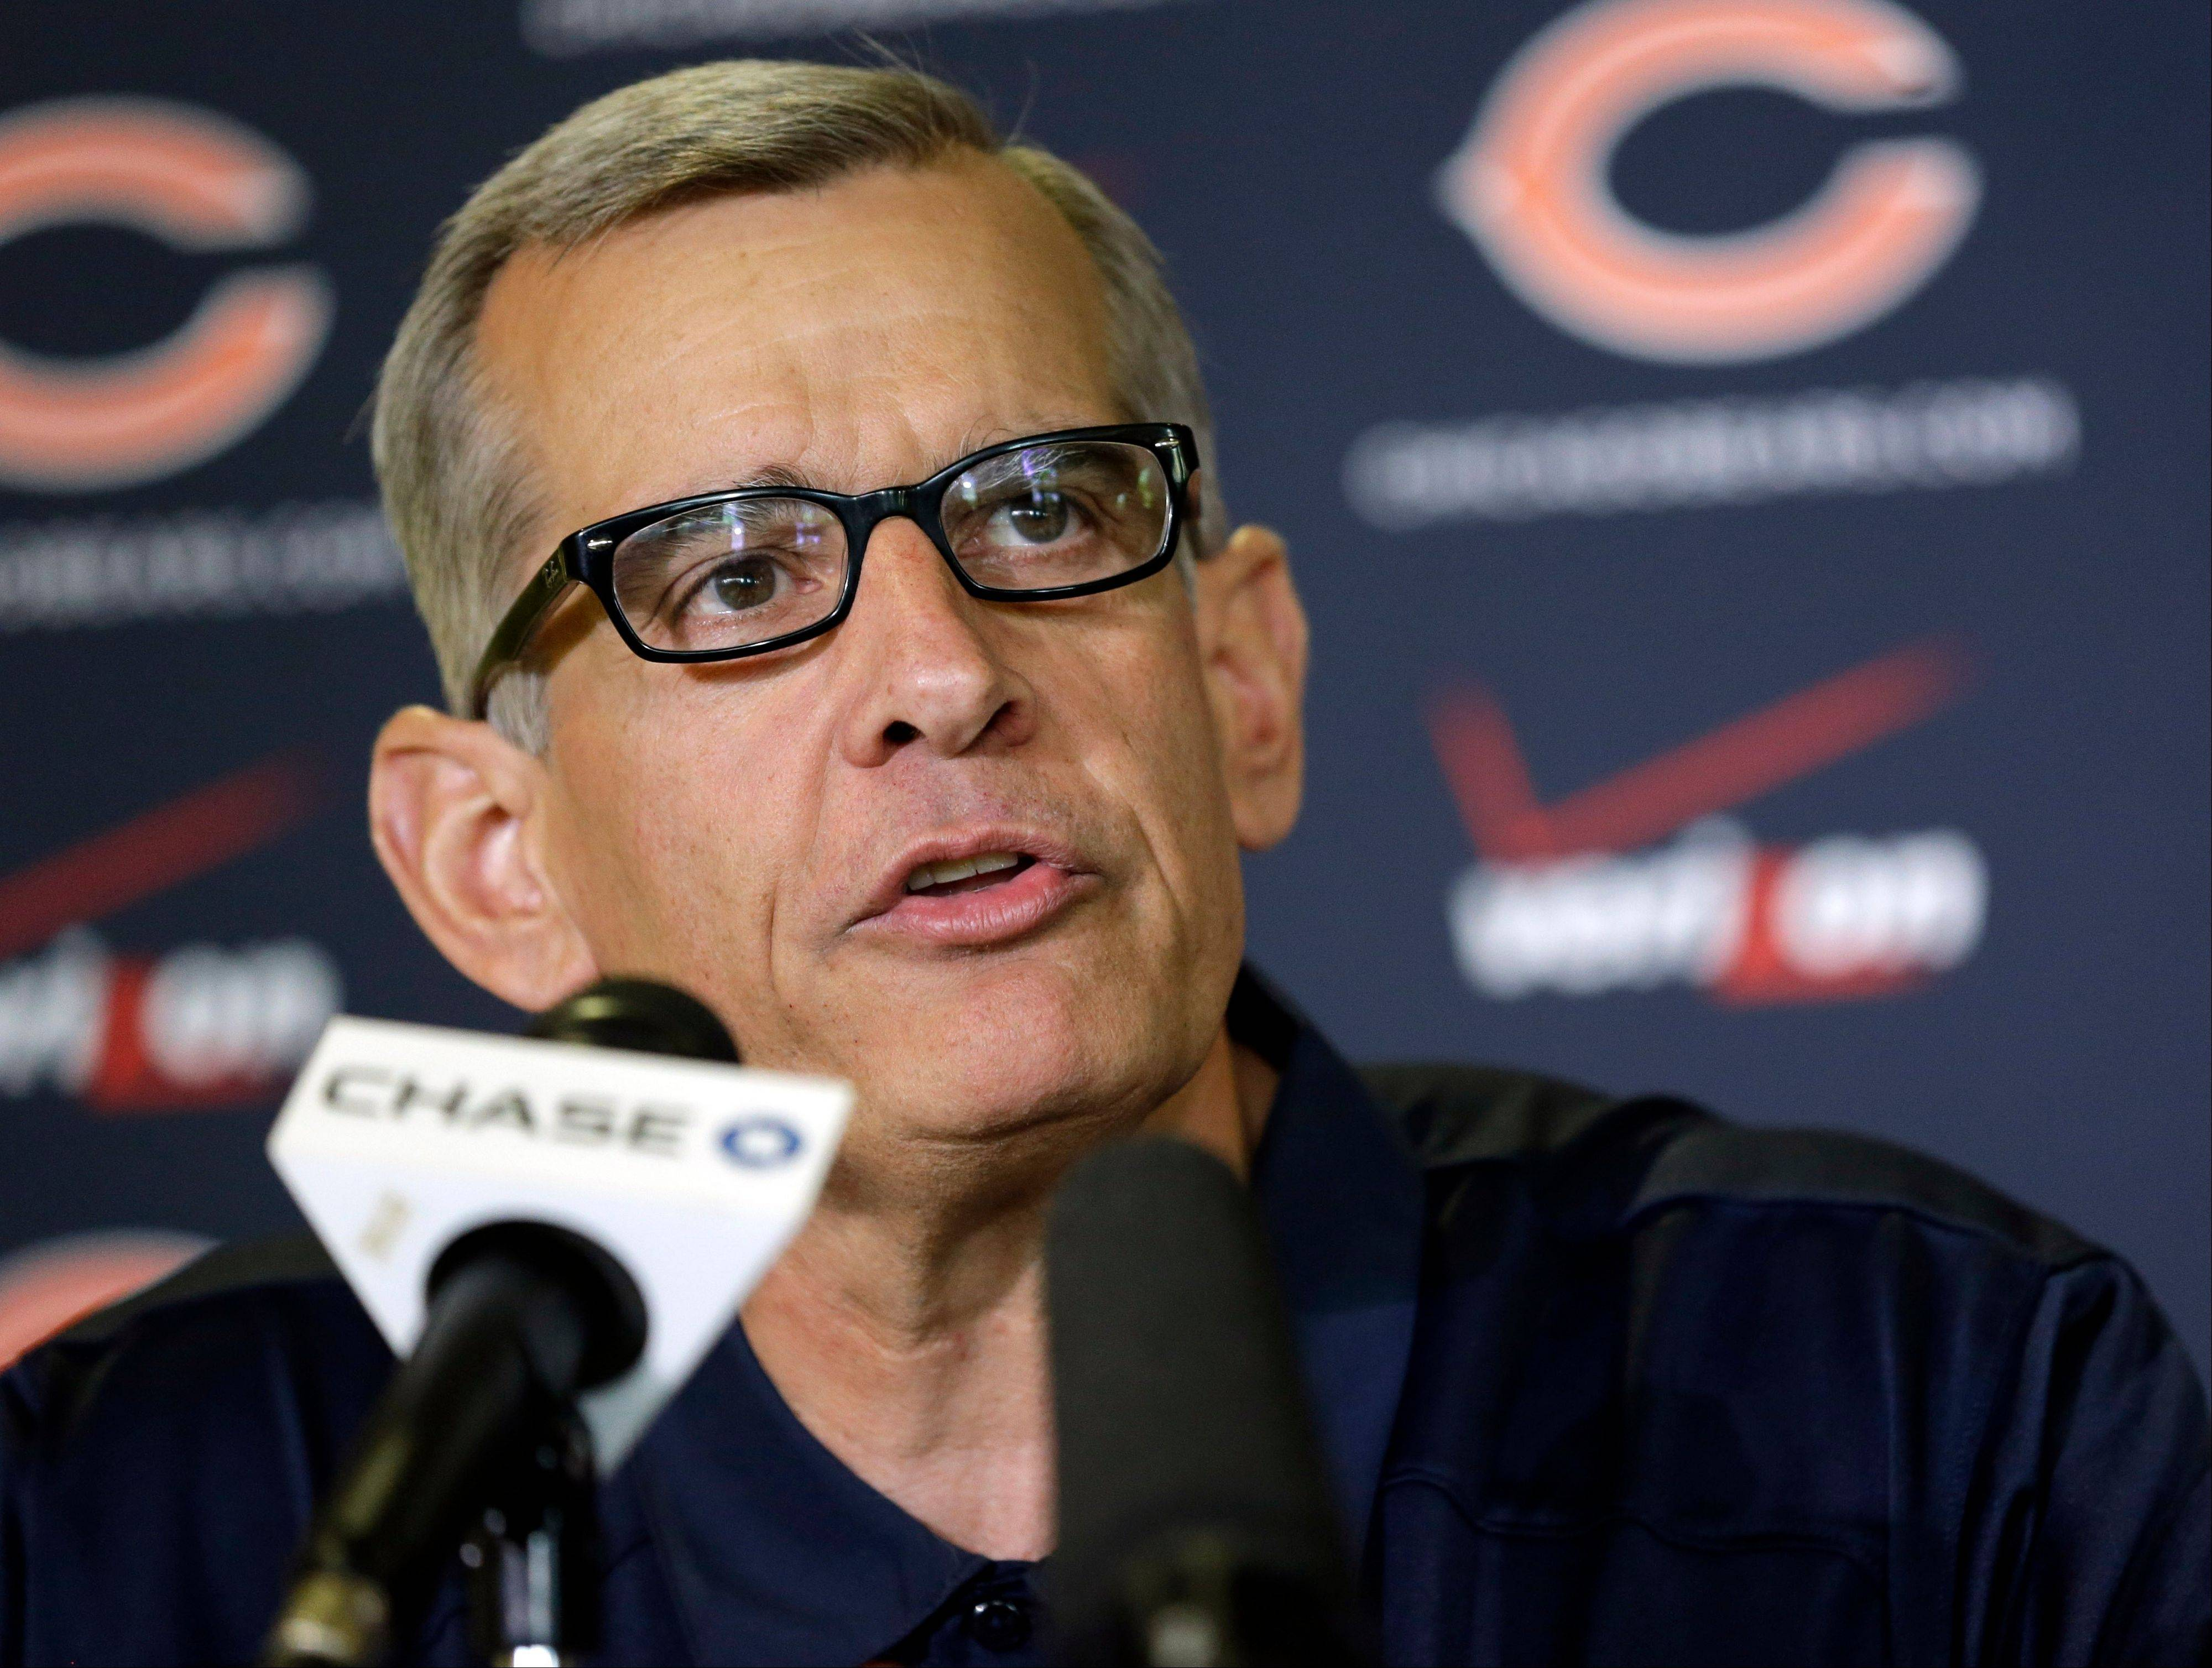 Mike North likes the policy by Bears general manager Phil Emery to not offer any contract extensions to players this season.